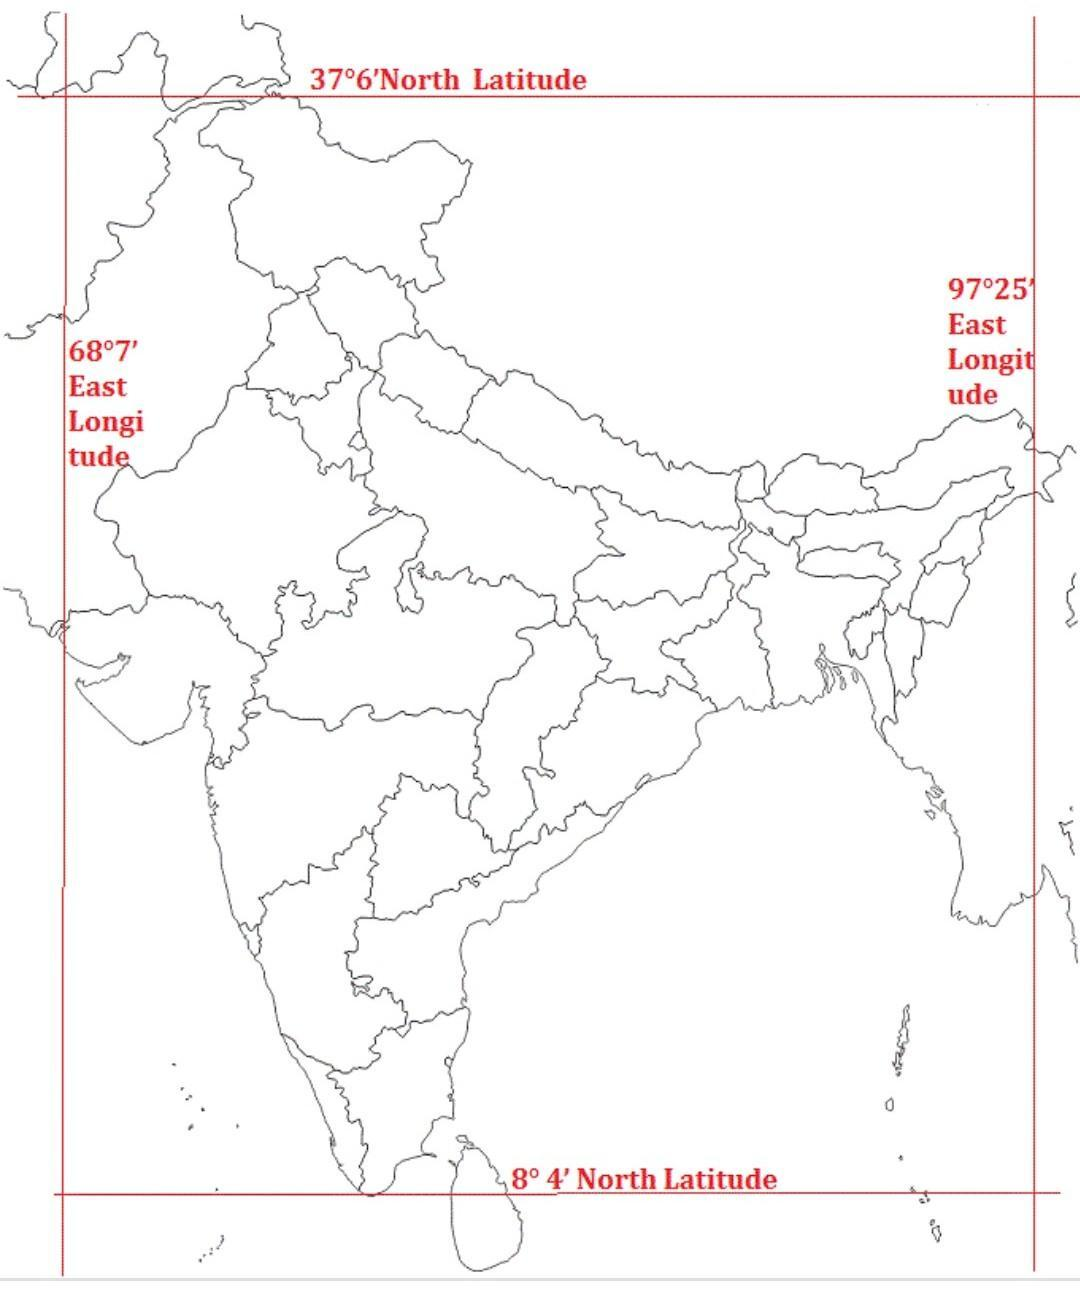 Intiaxanadiacent Countriesin The Physical Map Of India In The Physical Map Of India Mark The Equator Brainly In